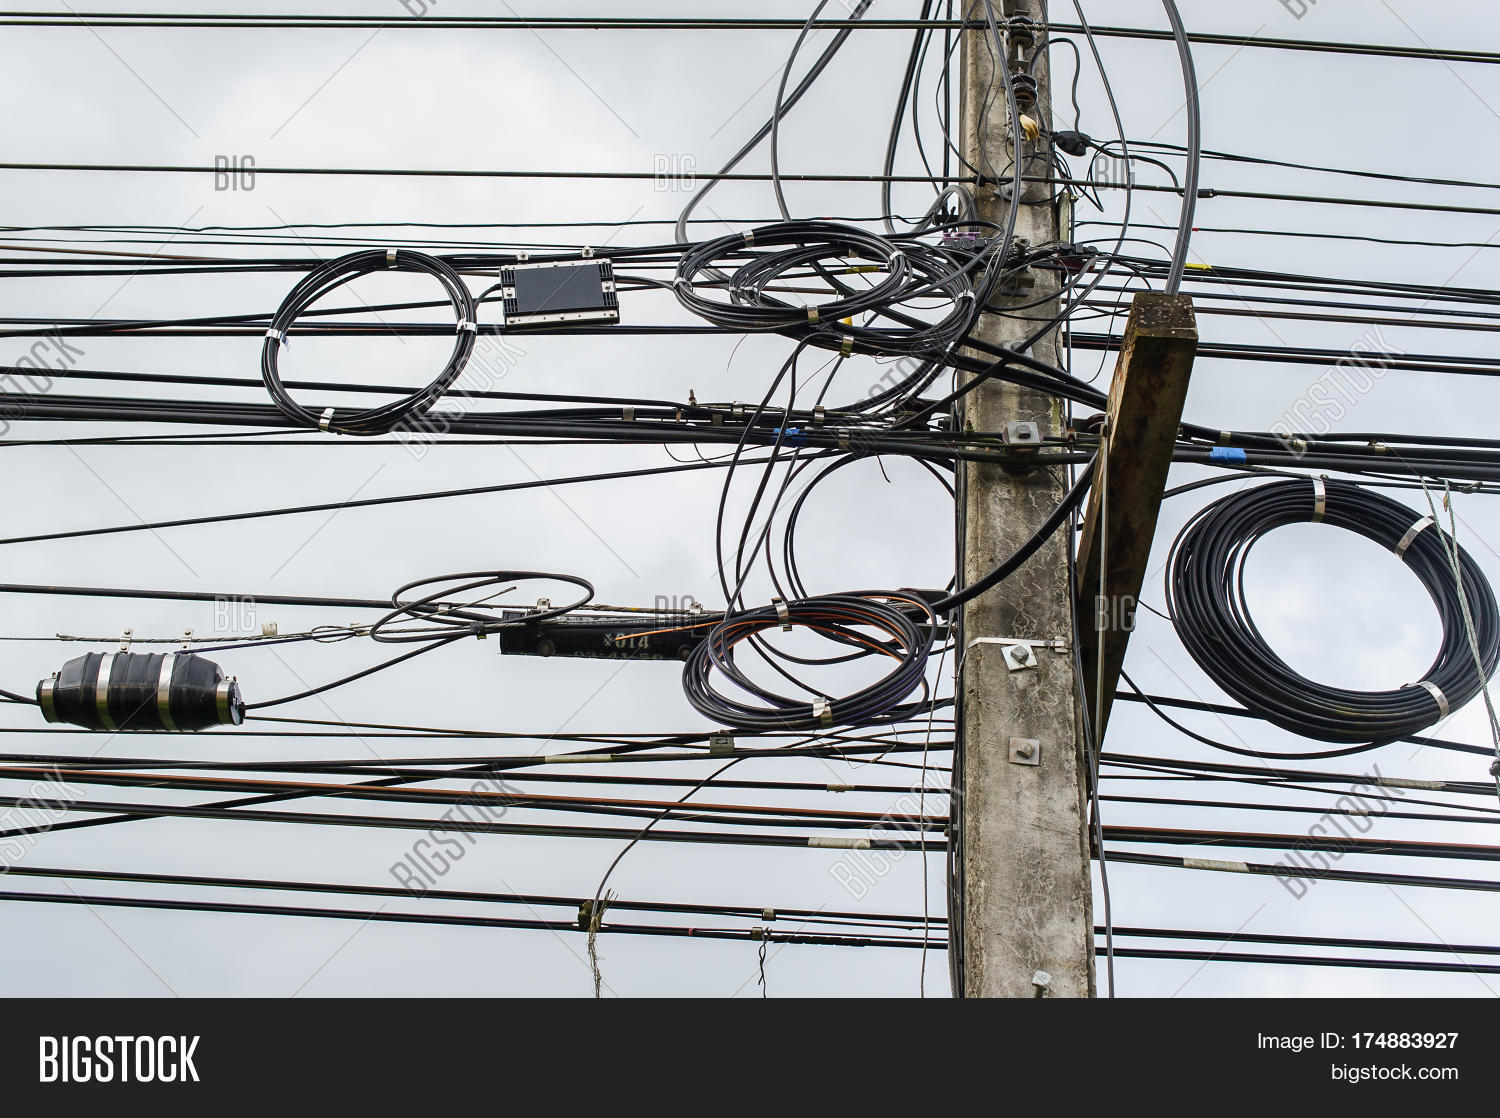 High Voltage Power Image & Photo (Free Trial) | Bigstock